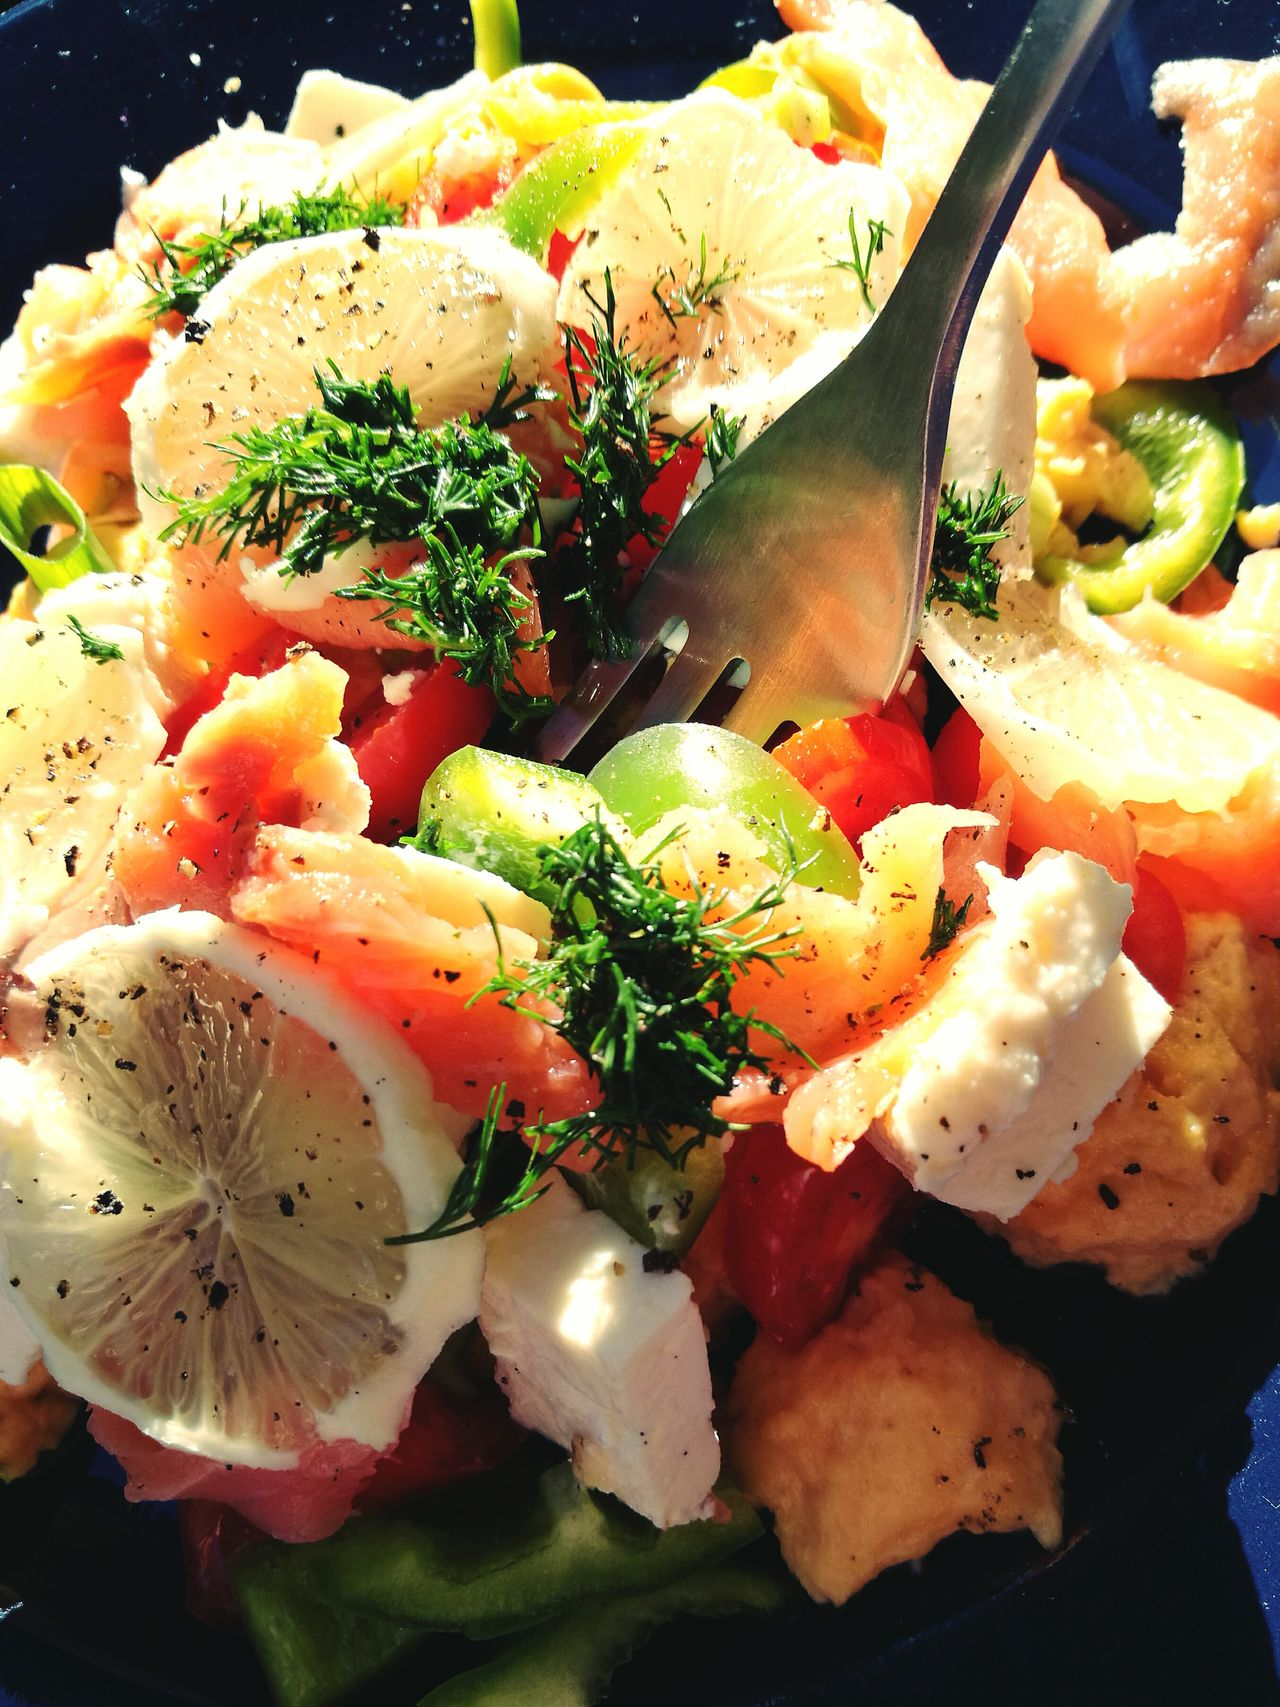 Food And Drink Food Freshness Healthy Eating No People Breakfast Brunch Salad Scrumbled Egg Ready-to-eat Dish Fork Smokedsalmon Close-up Freshness Fitness Diet Mediterranean Food